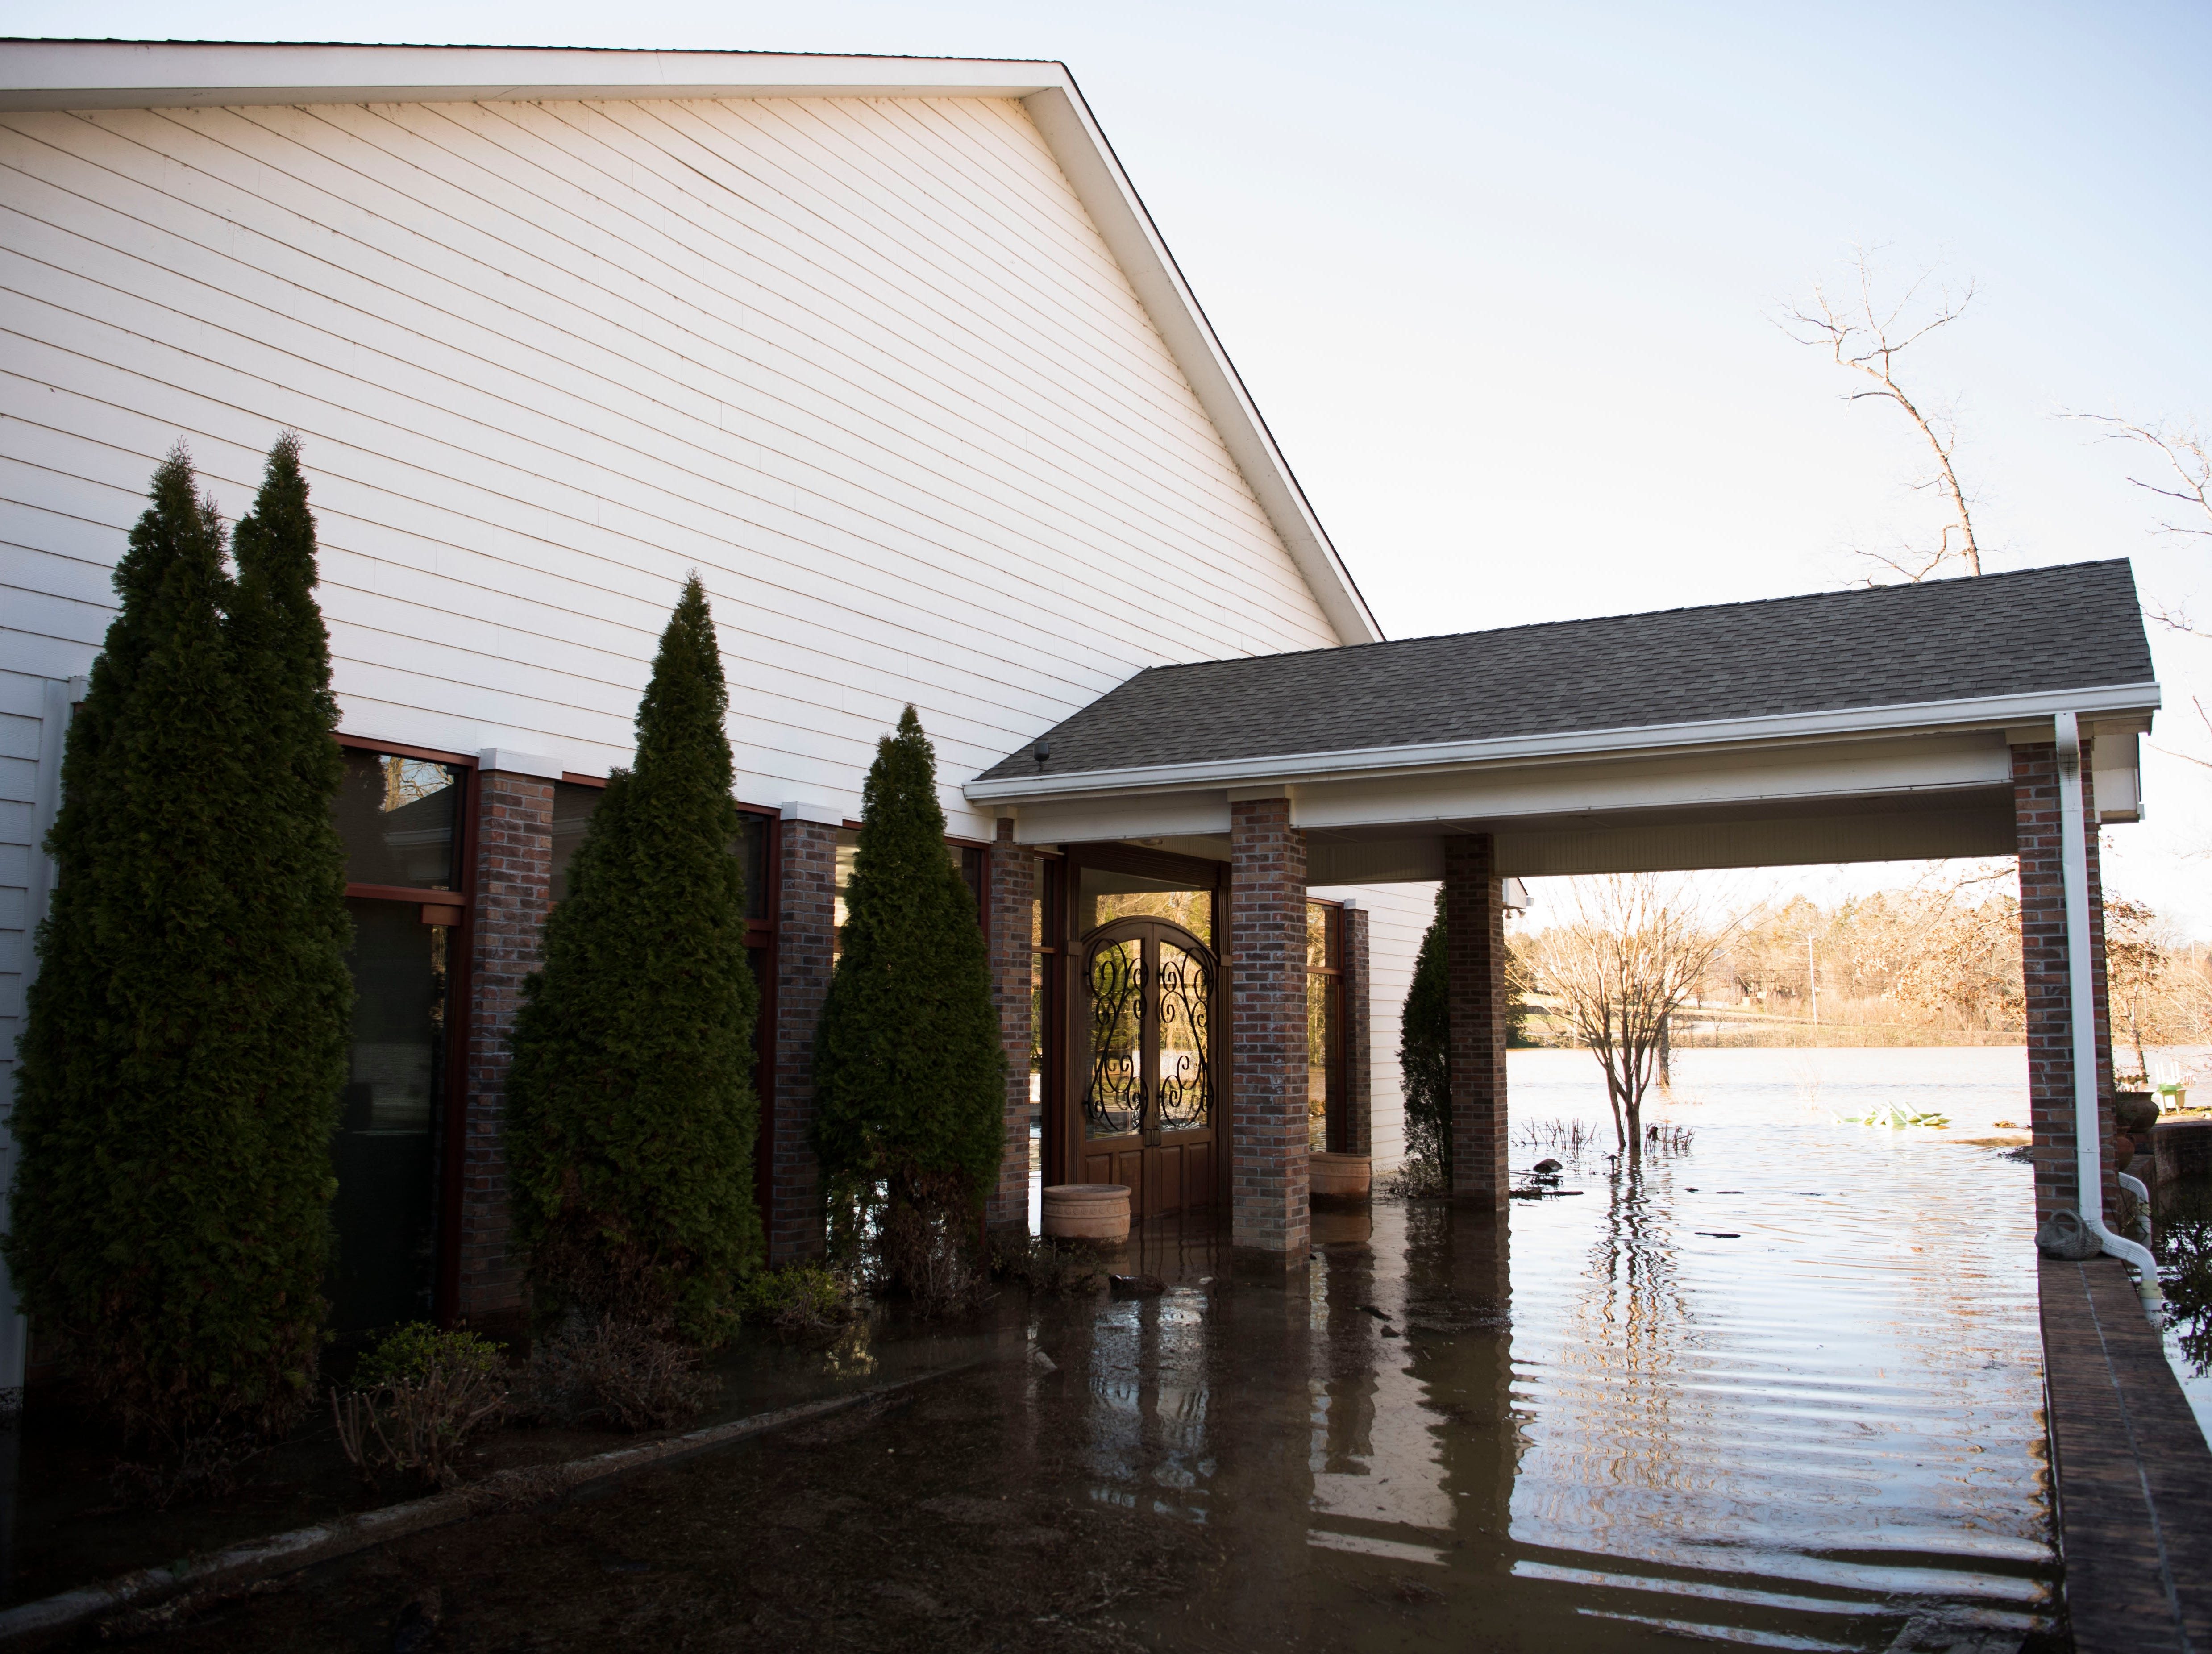 Flood damage is visible at Hunter Valley Farms pavilion Sunday, Feb. 24, 2019.